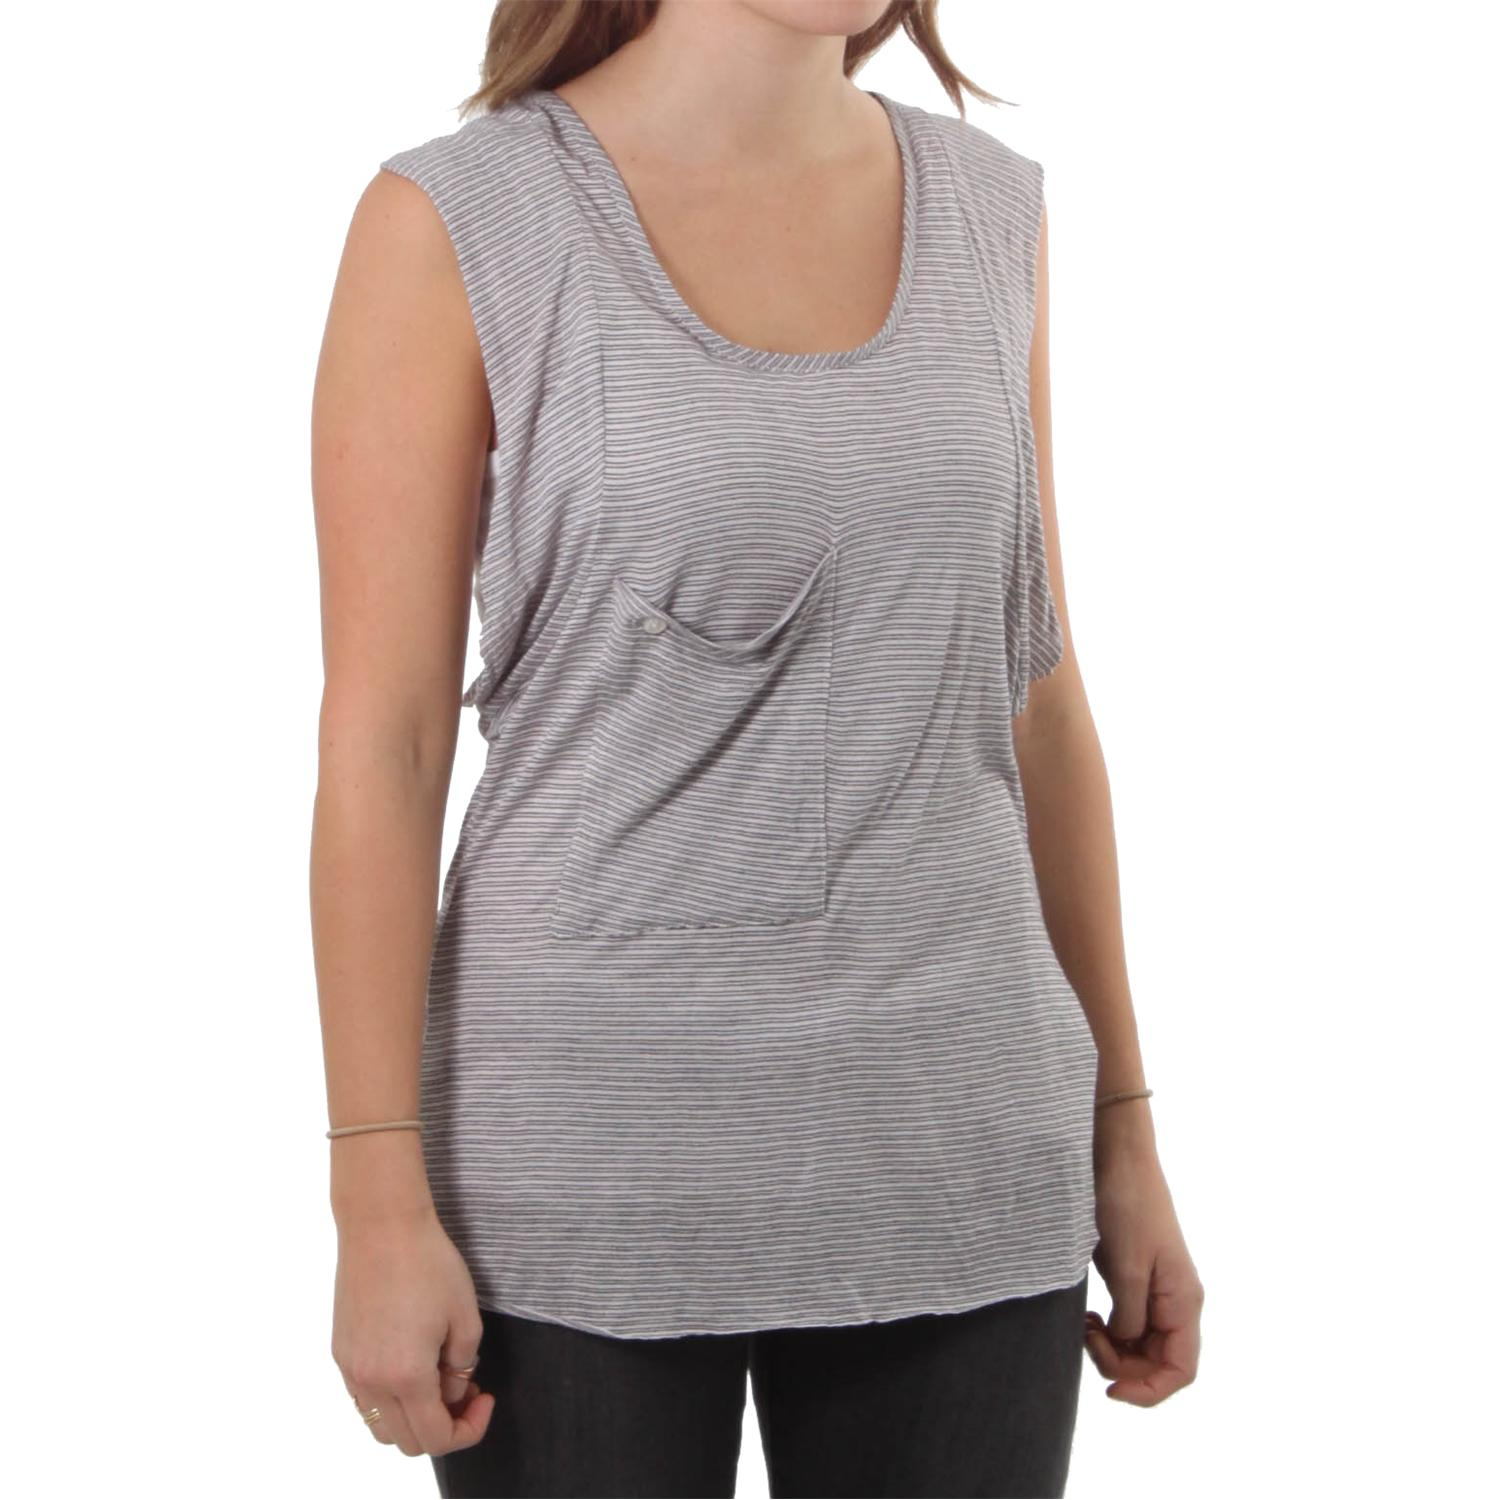 quiksilver rock royalty muscle t shirt women 39 s evo outlet